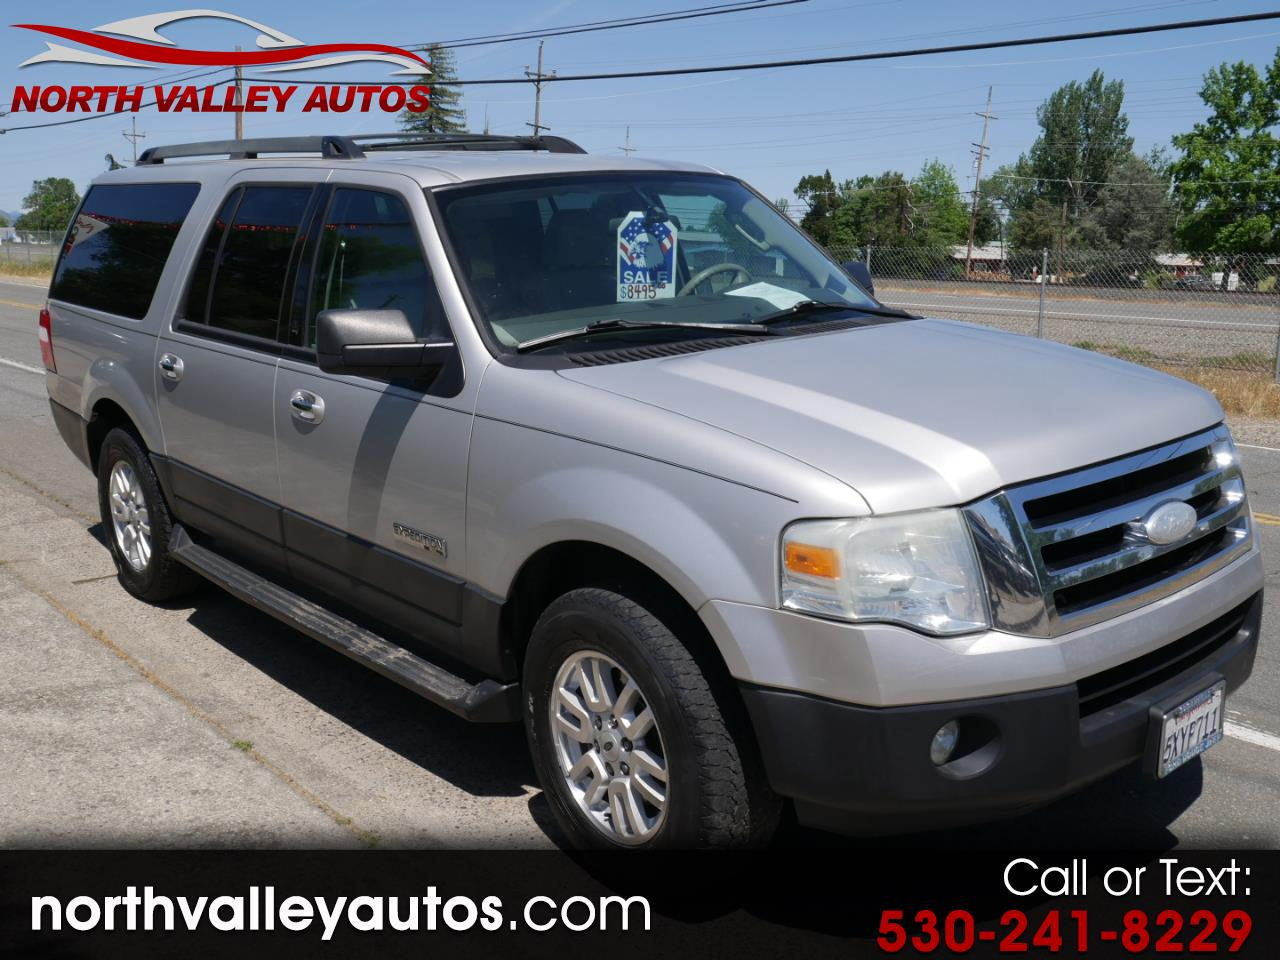 2007 Ford Expedition EL XLT 2WD